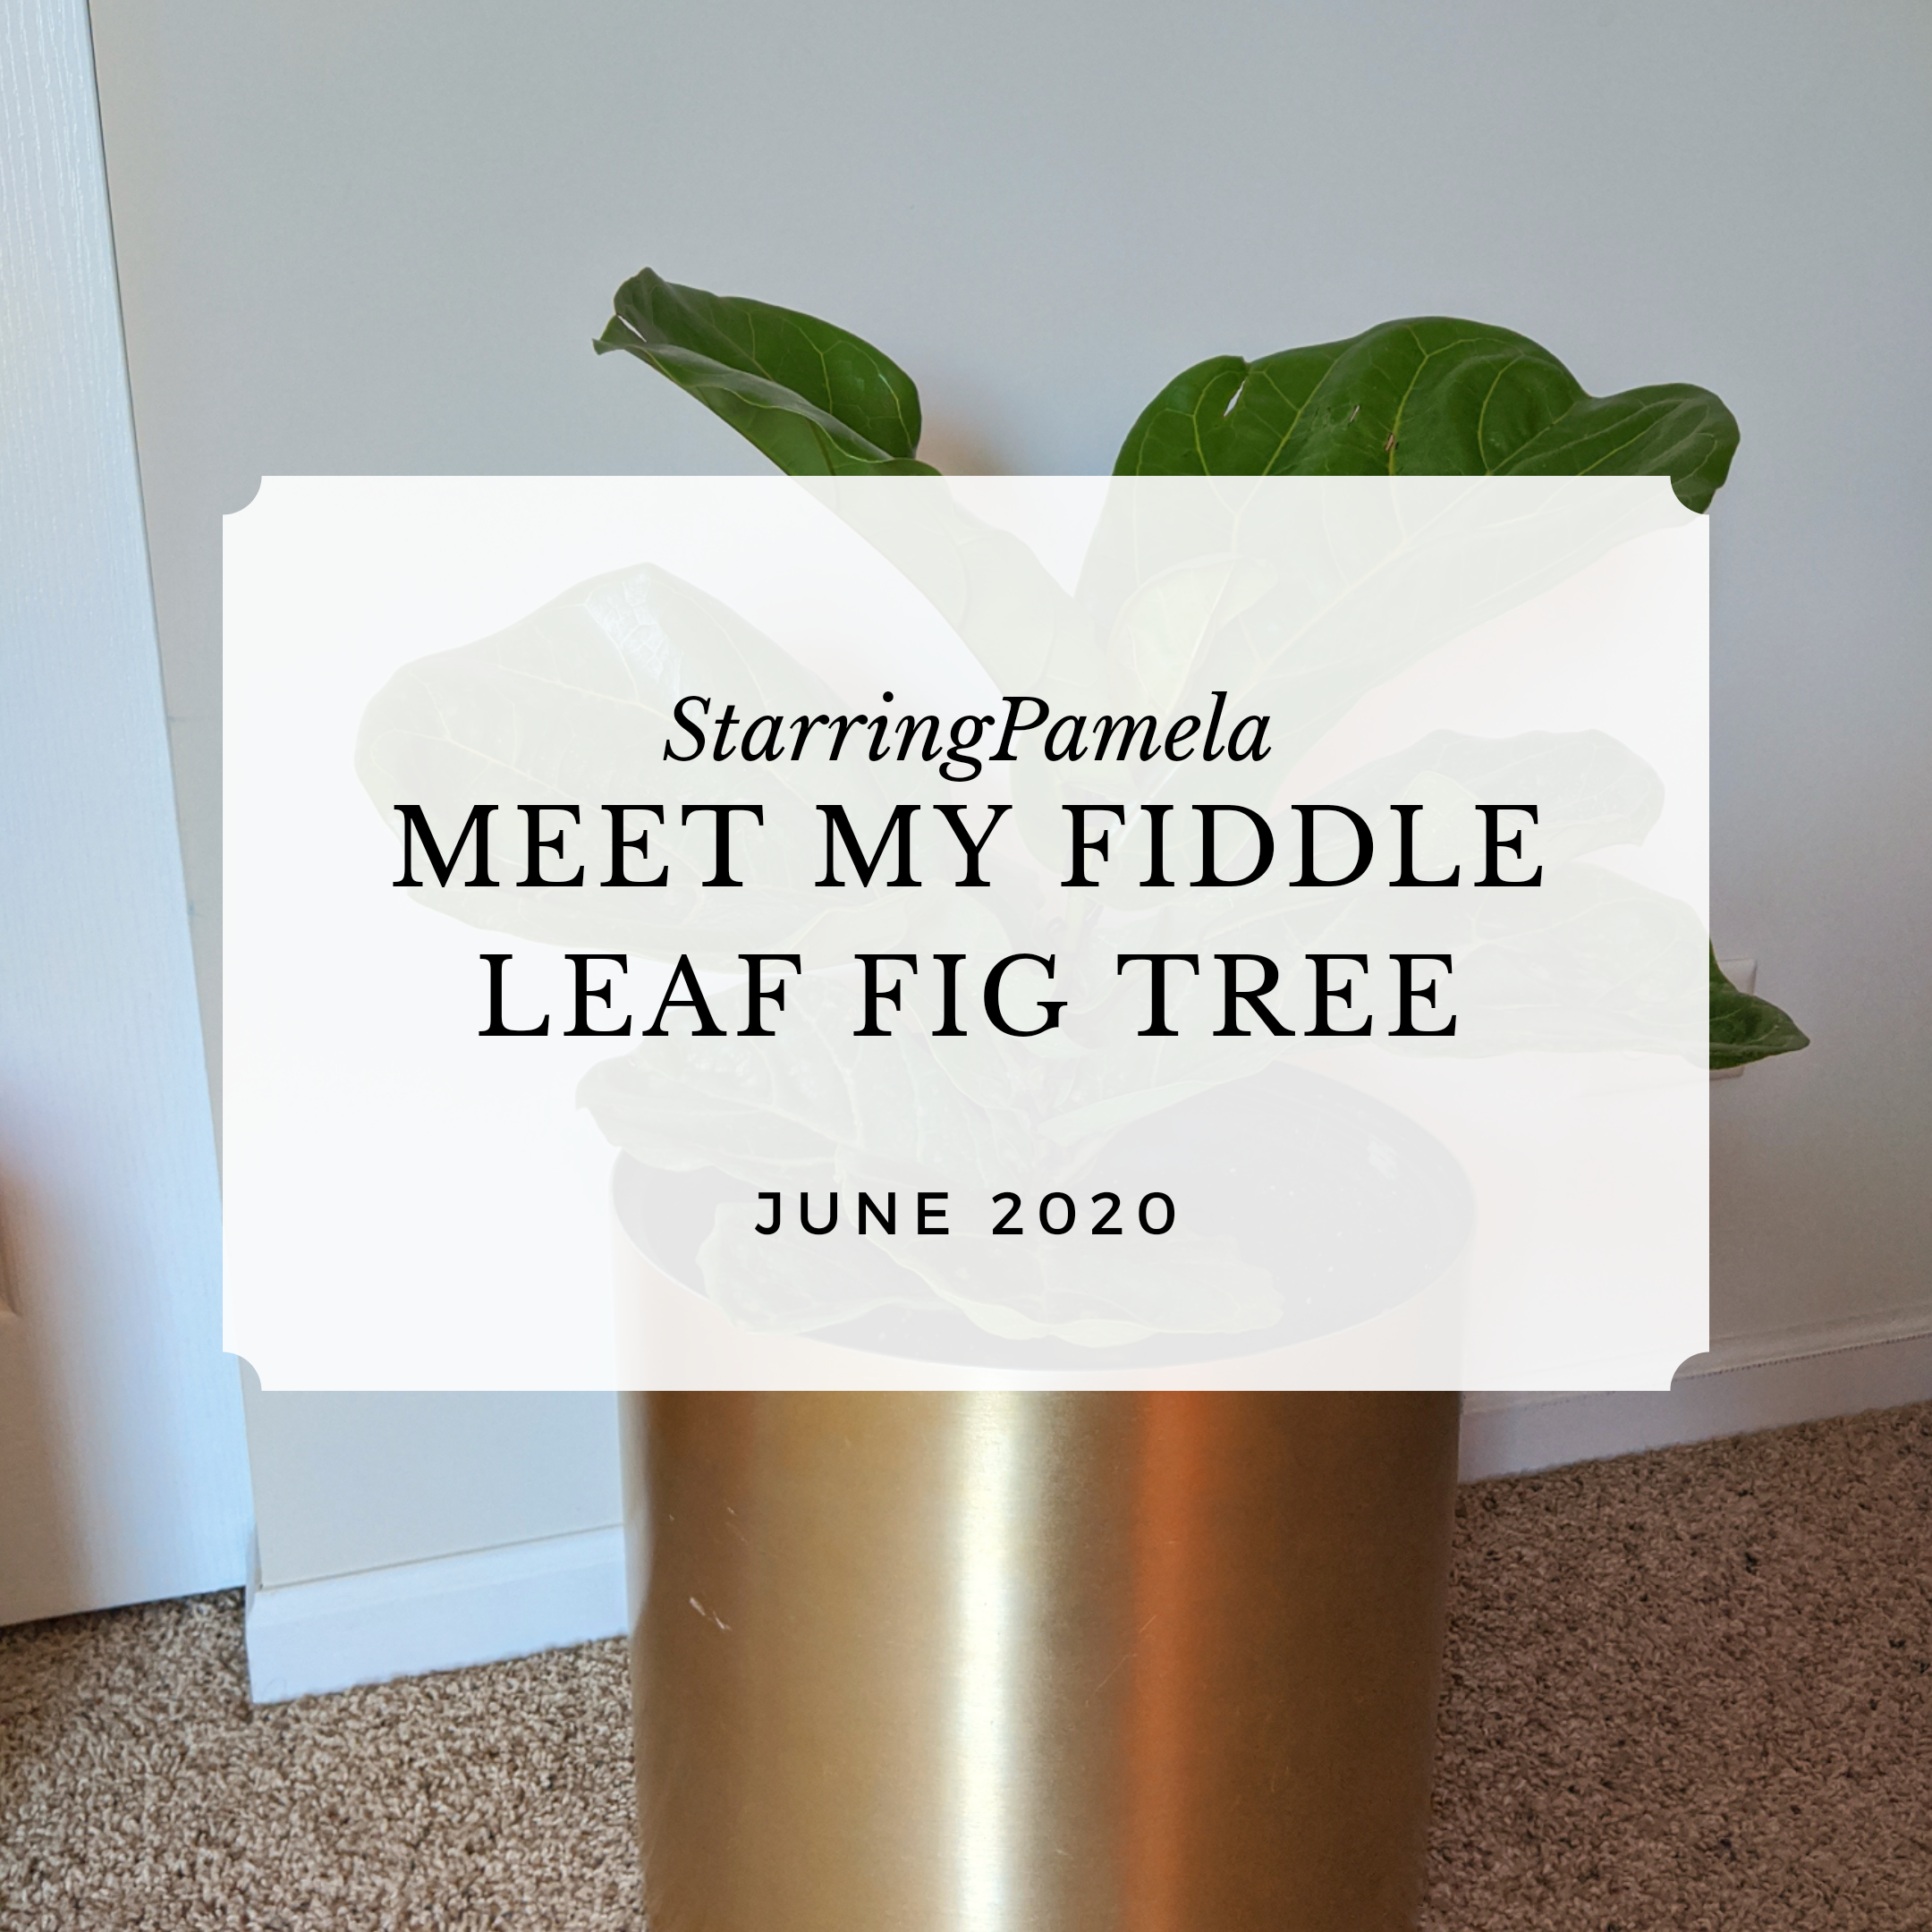 meet my fiddle leaf fig tree featured image